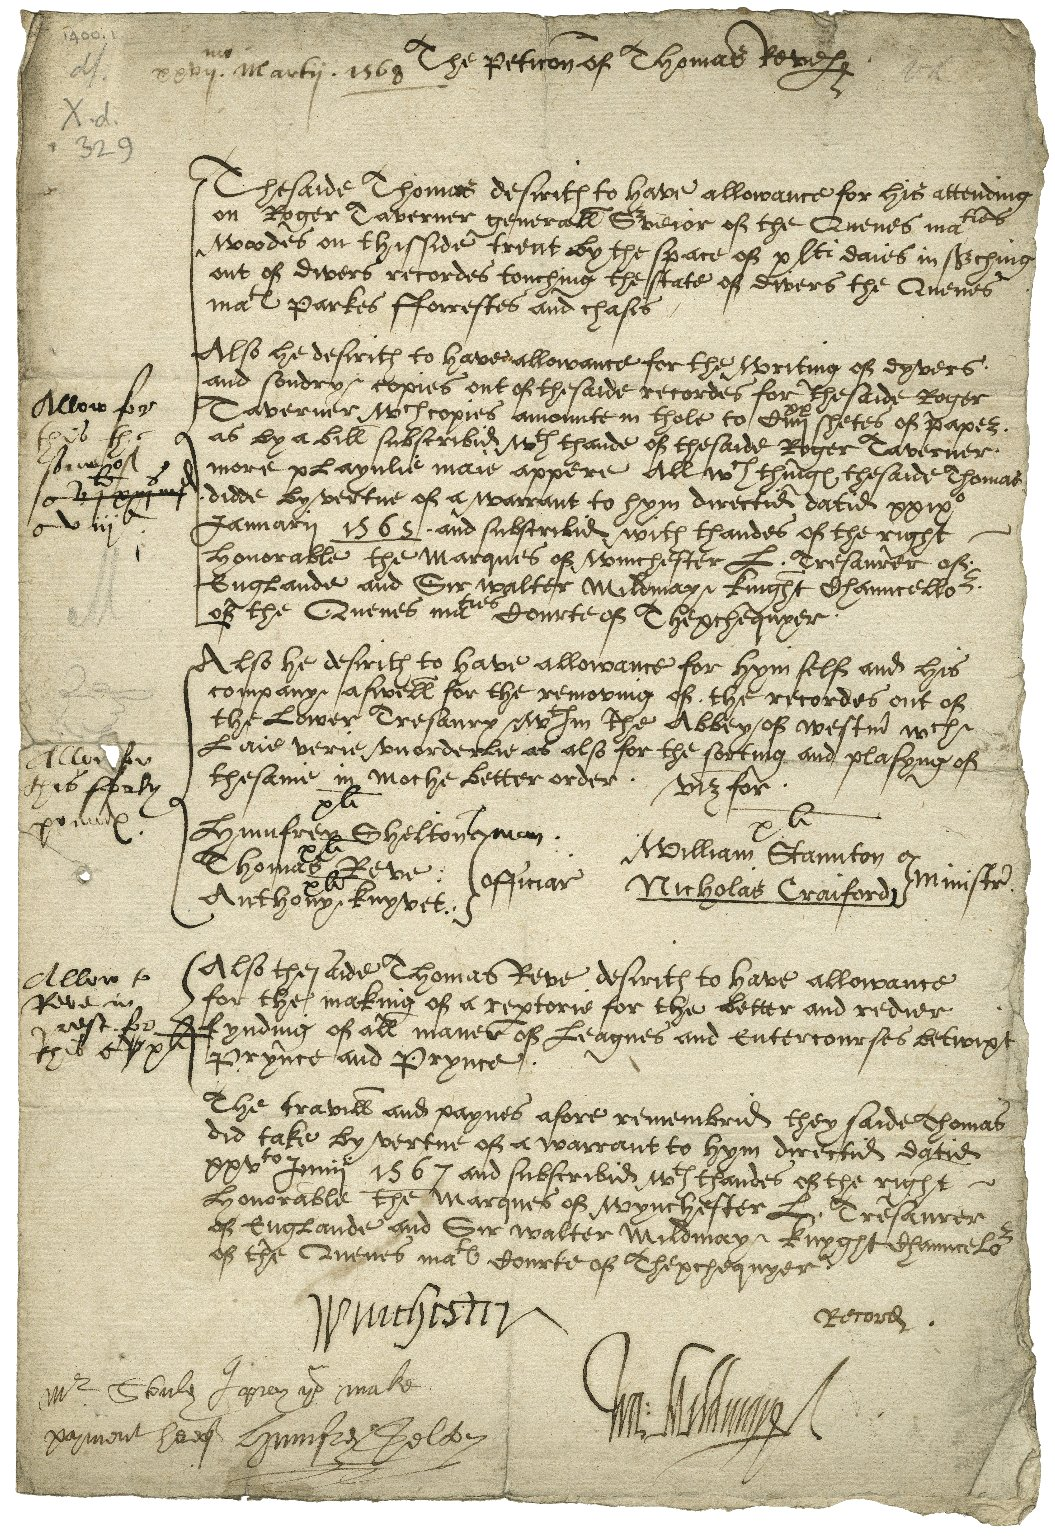 Allowance of £58 to Thomas Reve, upon his petition, signed by Winchester, Lord Treasurer, and Sir Walter Mildmay, Chancellor of the Exchequer